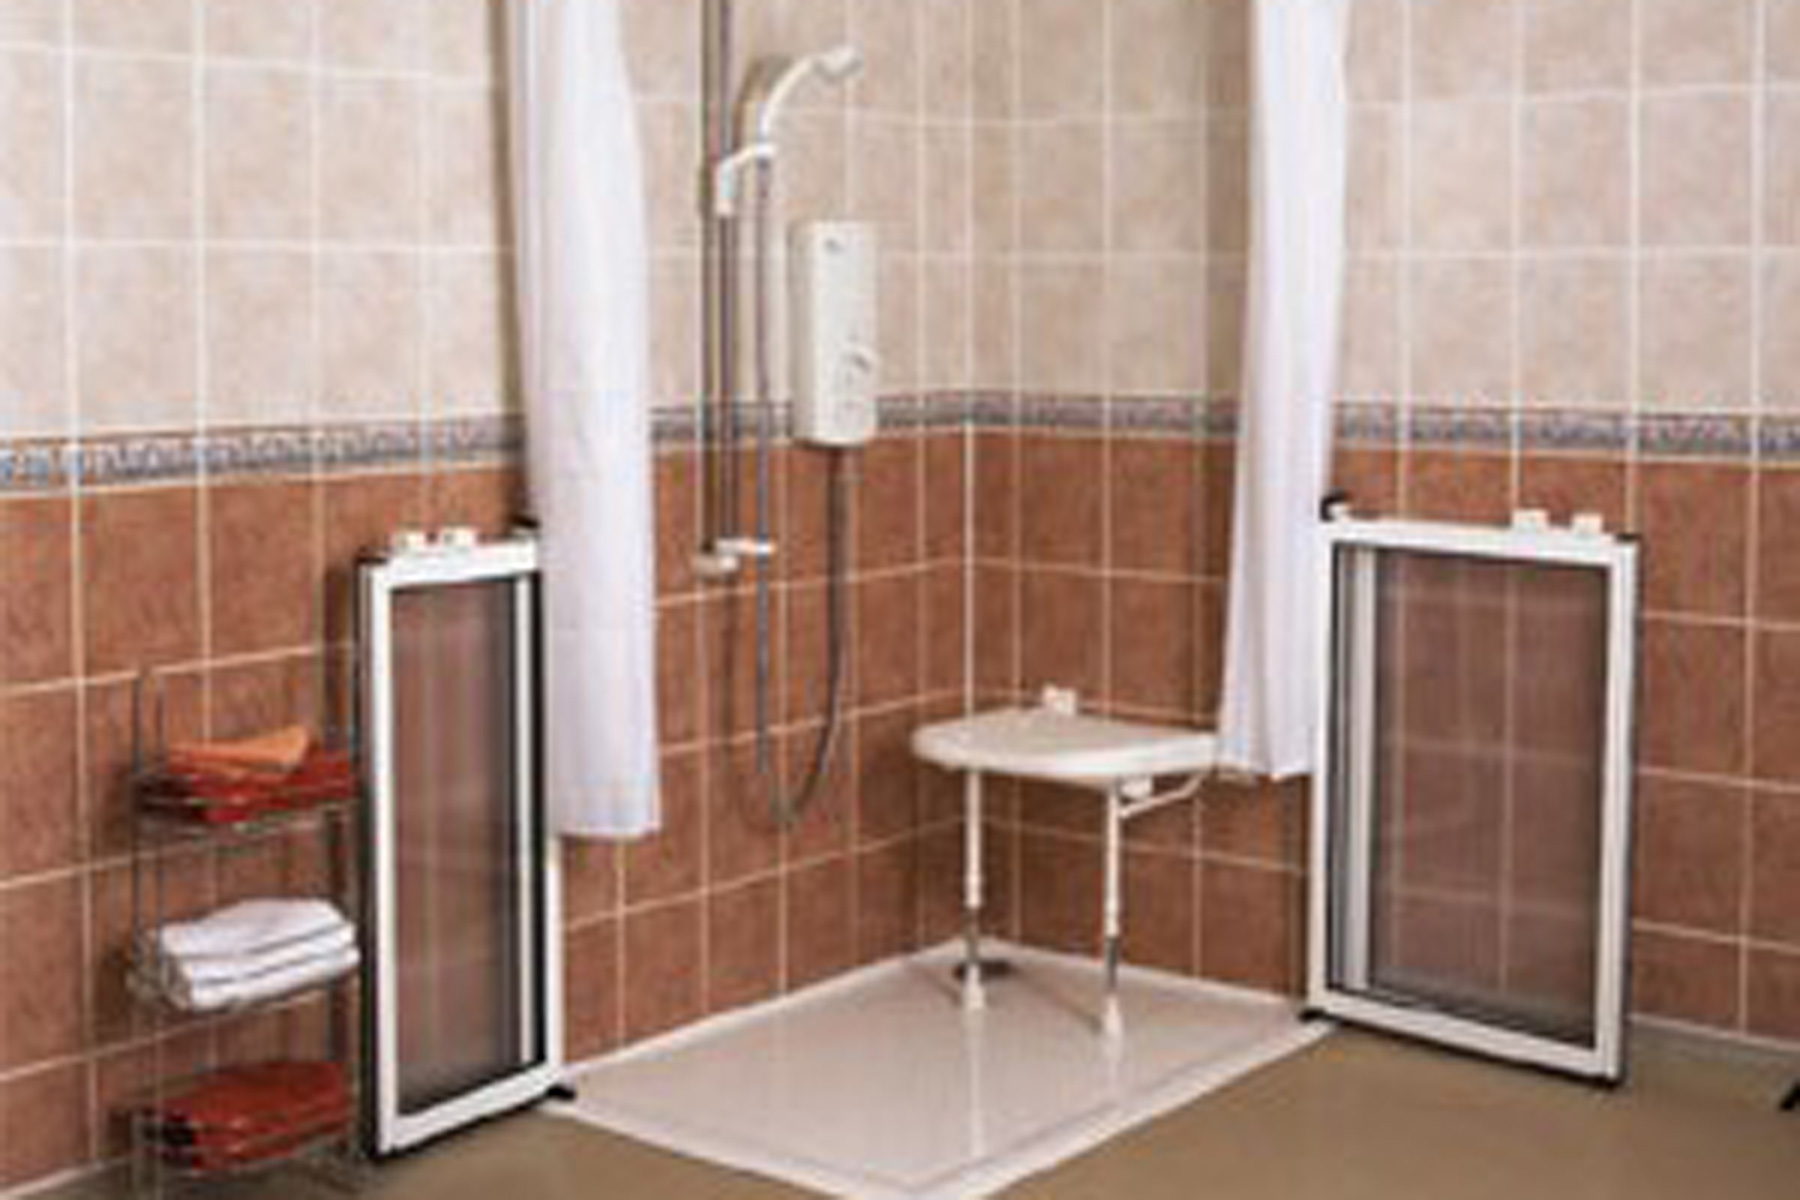 bathing shower doors can address this matter allowing you to shower